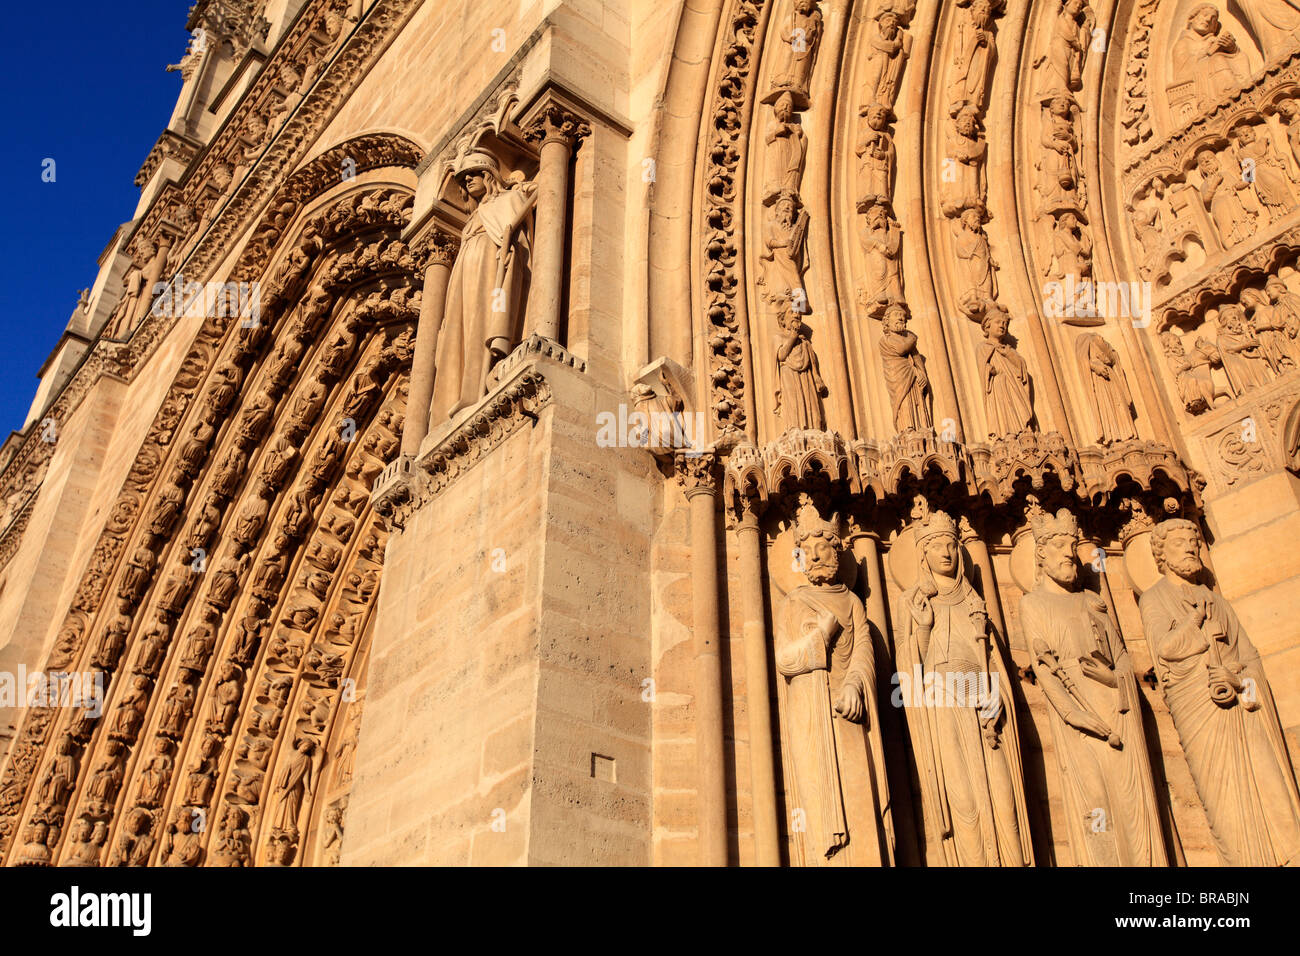 Saints statues decorated the Portal of St-Anne of Notre Dame cathedral. city of Paris. Paris. France Stock Photo